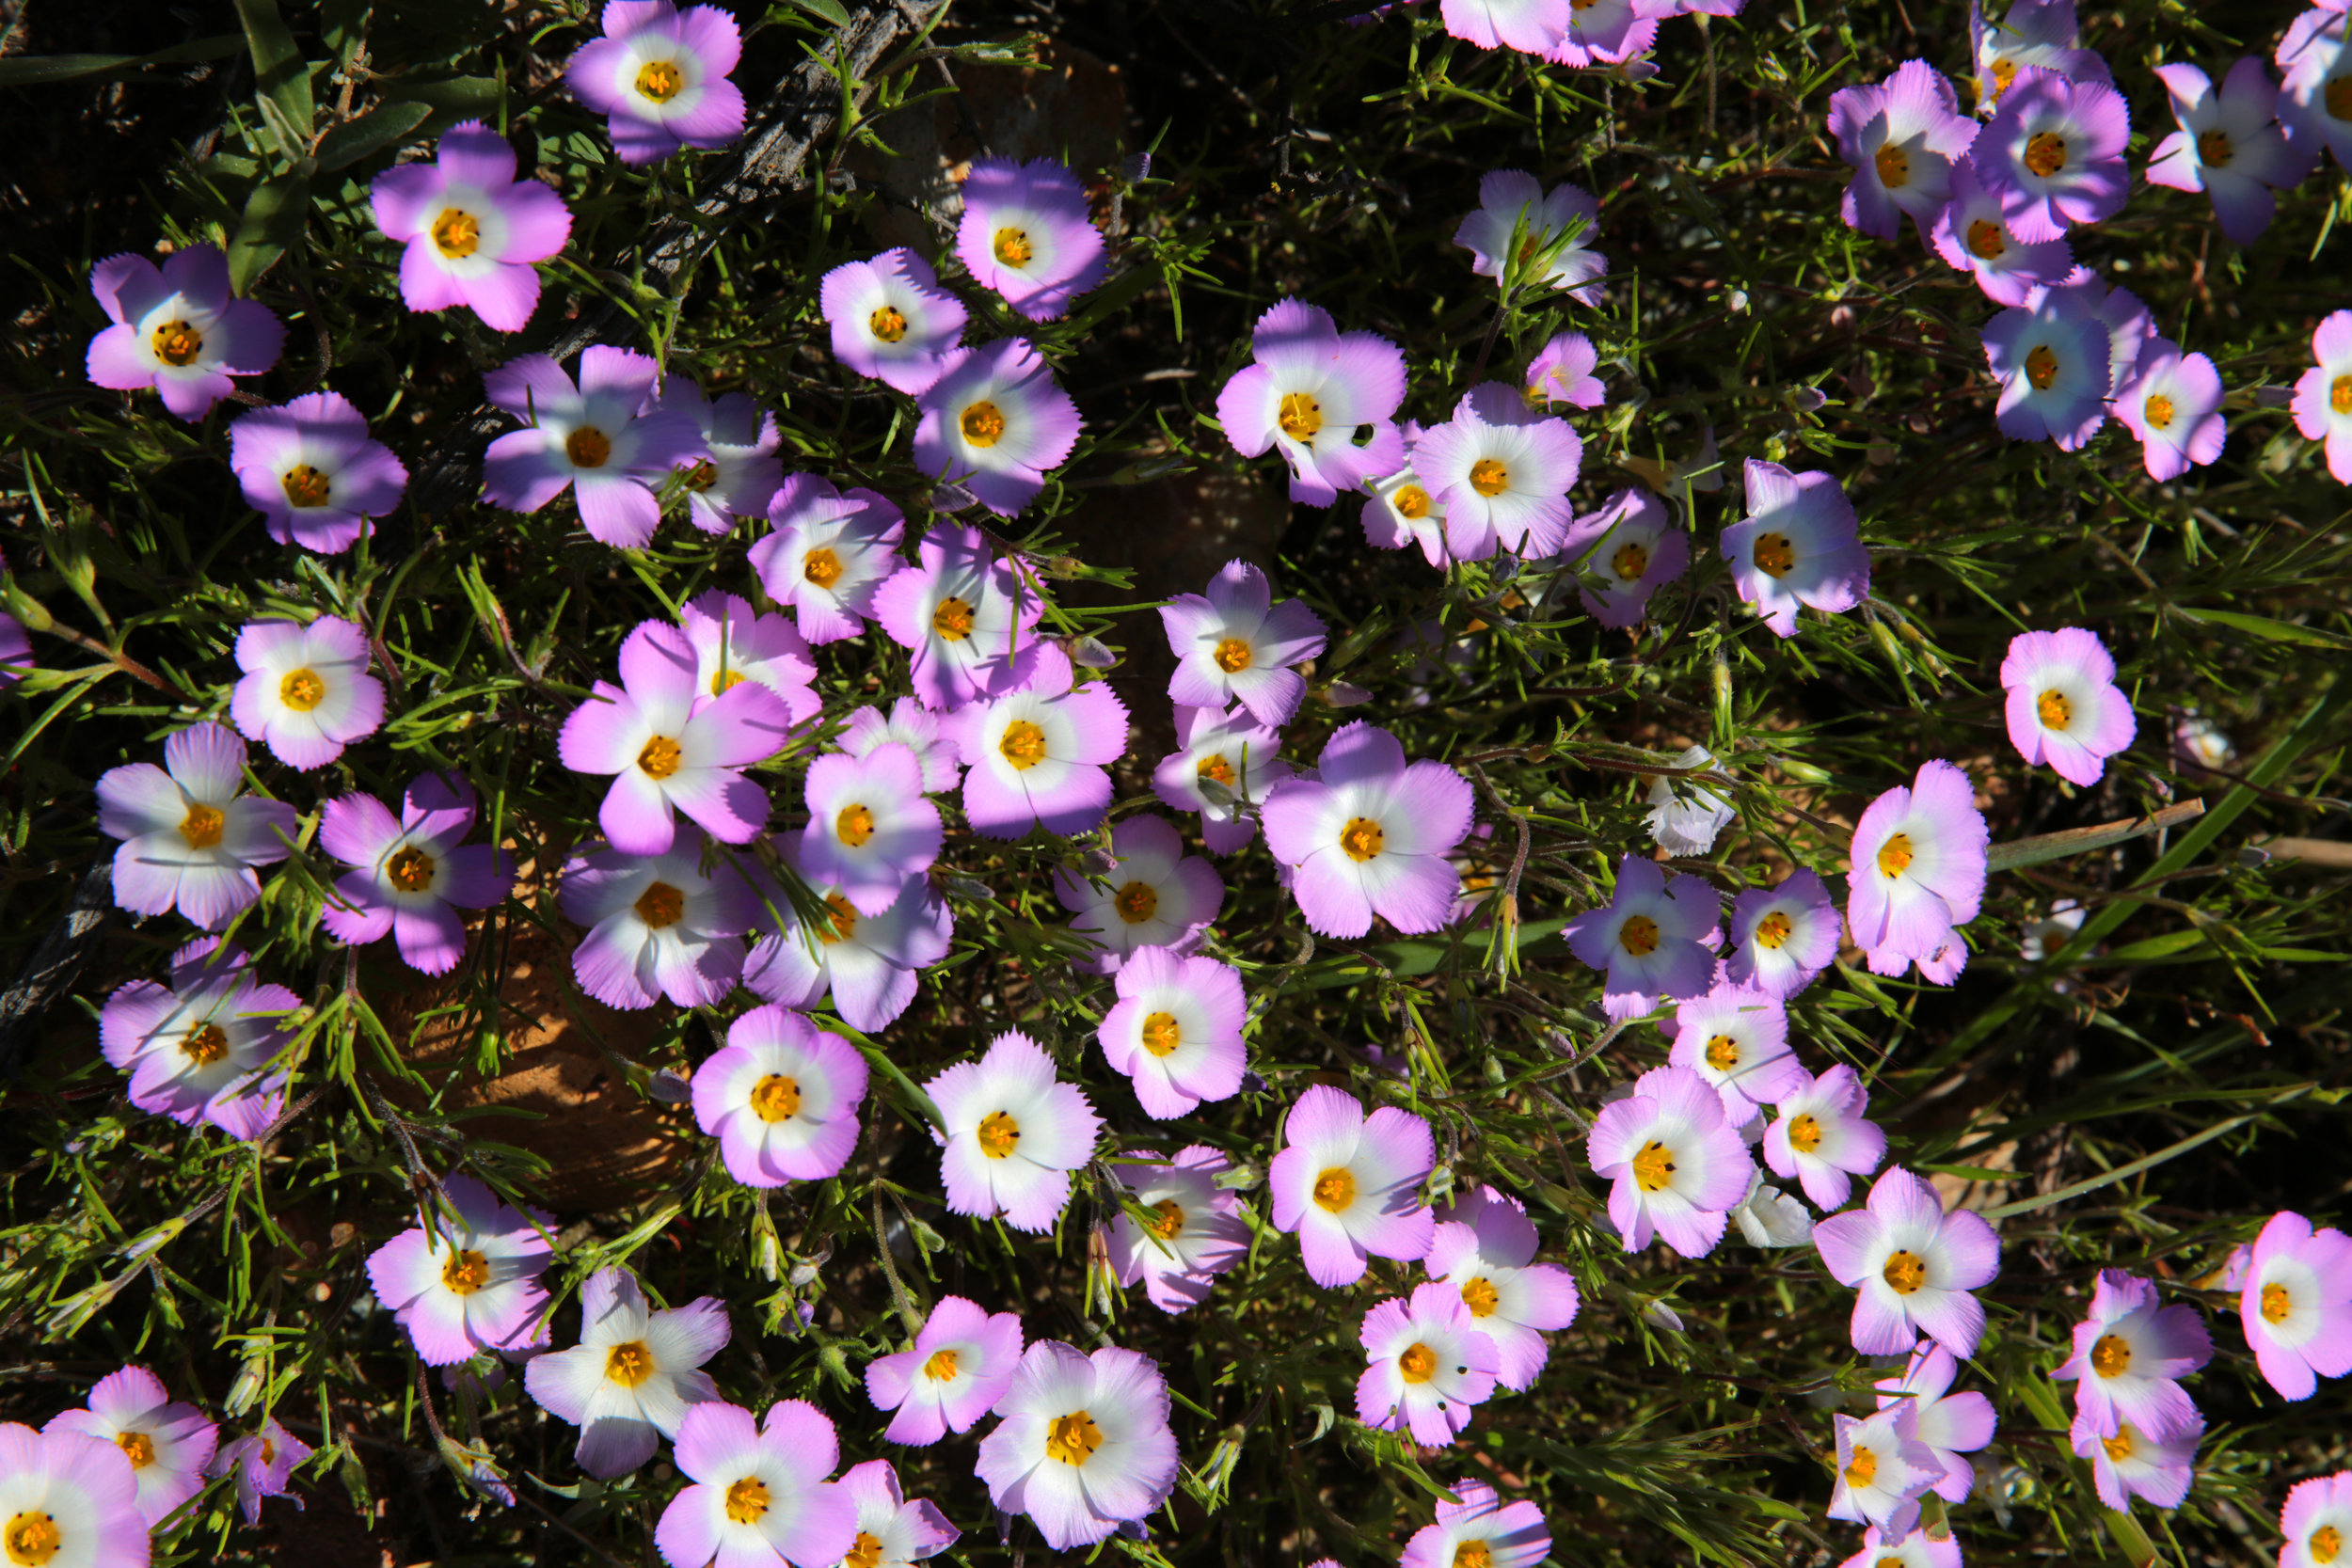 Ground pink (Linanthus dianthiflorus) growing in Los Peñasquitos Canyon Preserve in San Diego.